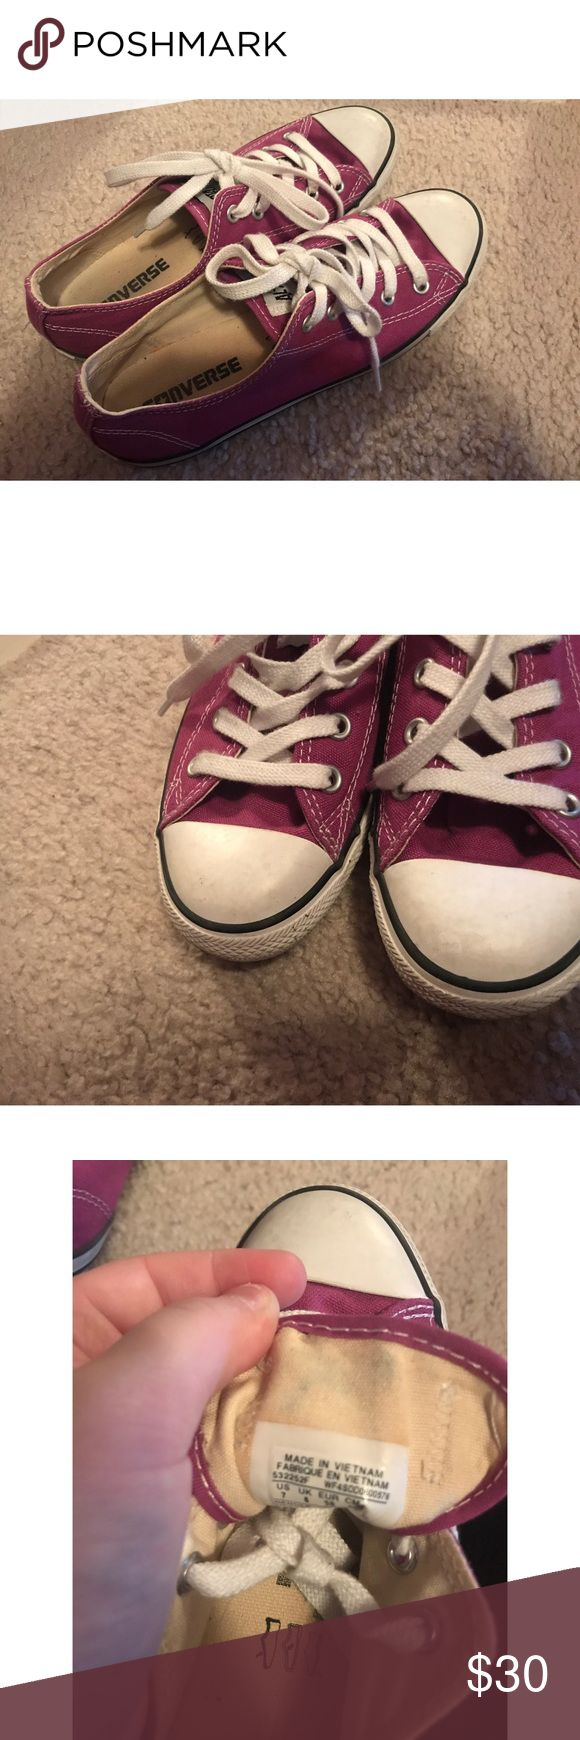 Fuscia Low Rise Converse All Star Fuscia (Purple) Low-Rise Converse All Star Sneakers in size 7. True to size and in excellent condition! While they have been worn they're in great condition with very few minor flaws: one being a blue-ish mark on the inner side of the tongue on the right shoe, some light scuffs on the white part which I'm sure can be cleaned if preferred, and some light signs of use inside. The only other thing is that there is a dot on one side of the canvas on one of the…